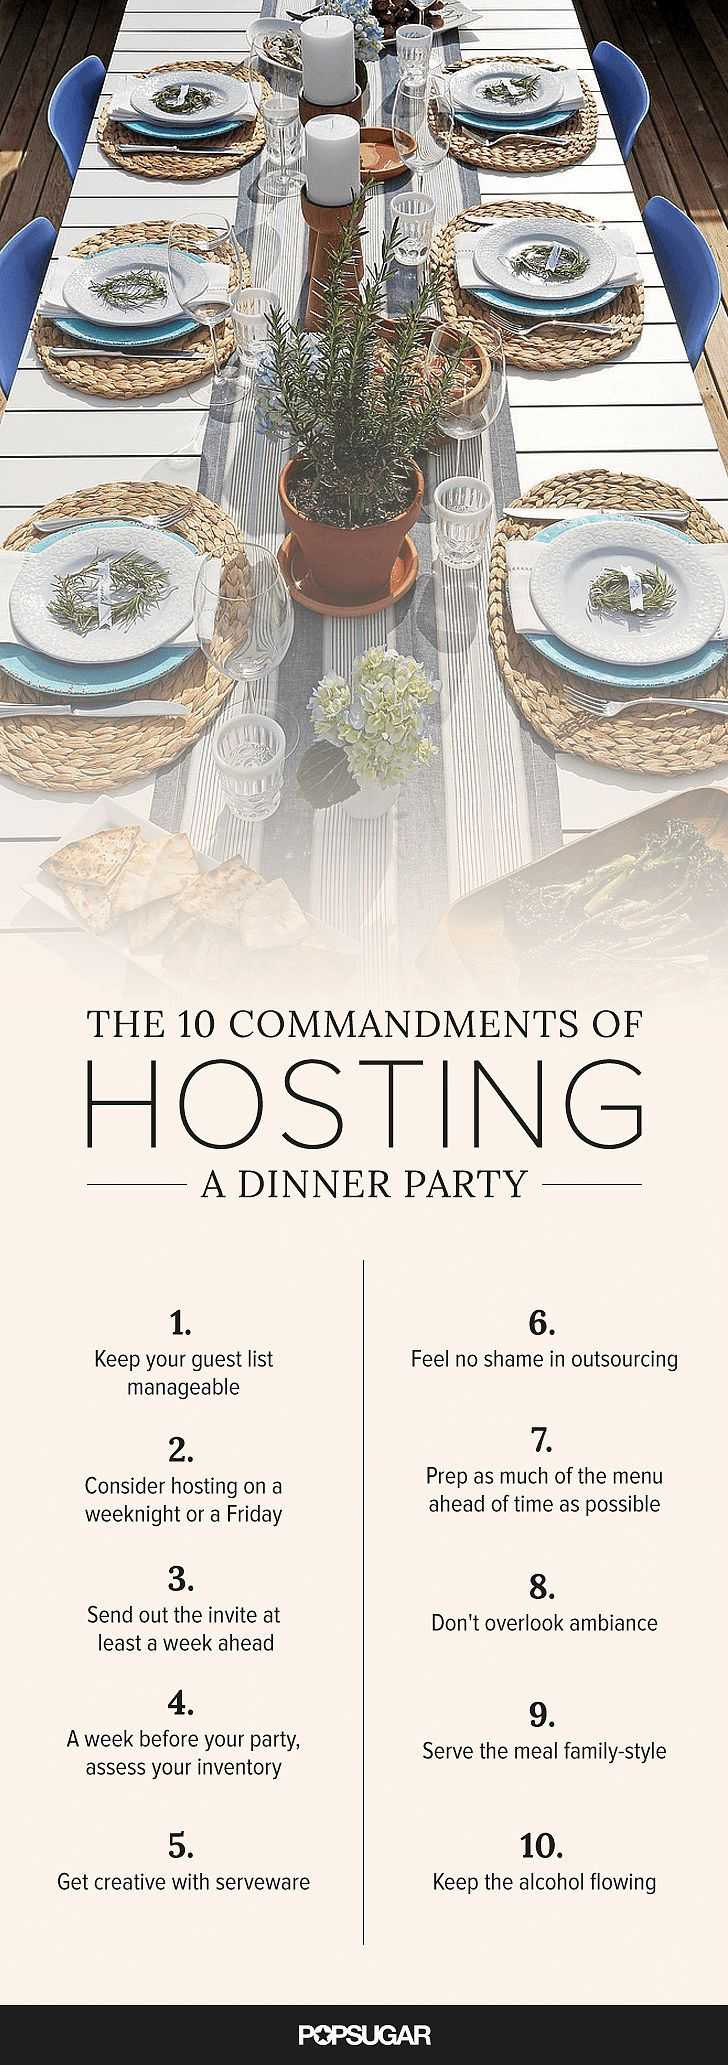 How to Host a Dinner Party | POPSUGAR Food